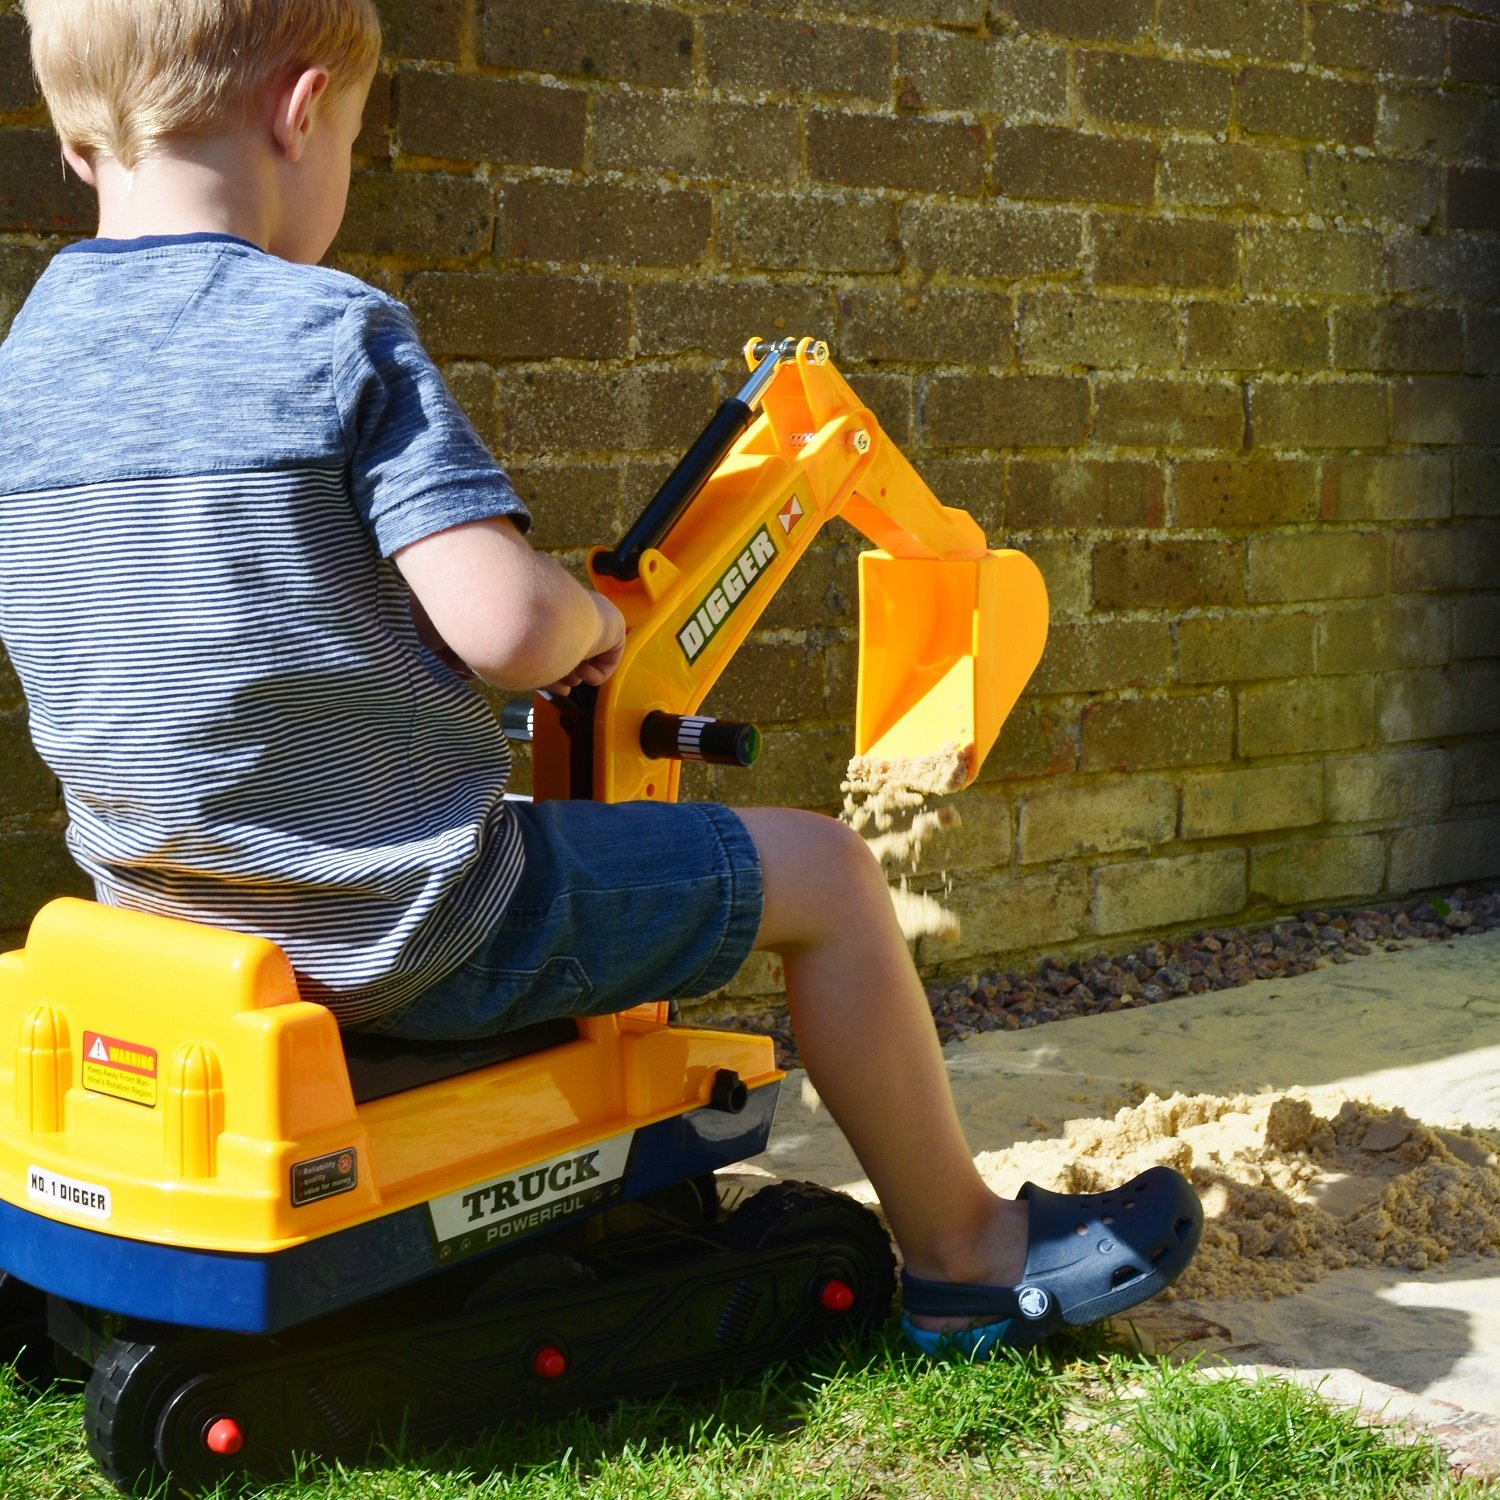 KStarz-Toys Large Childrens Ride-on Digger 2-6years old Digger and Grabber! Rotating Digger with Hat